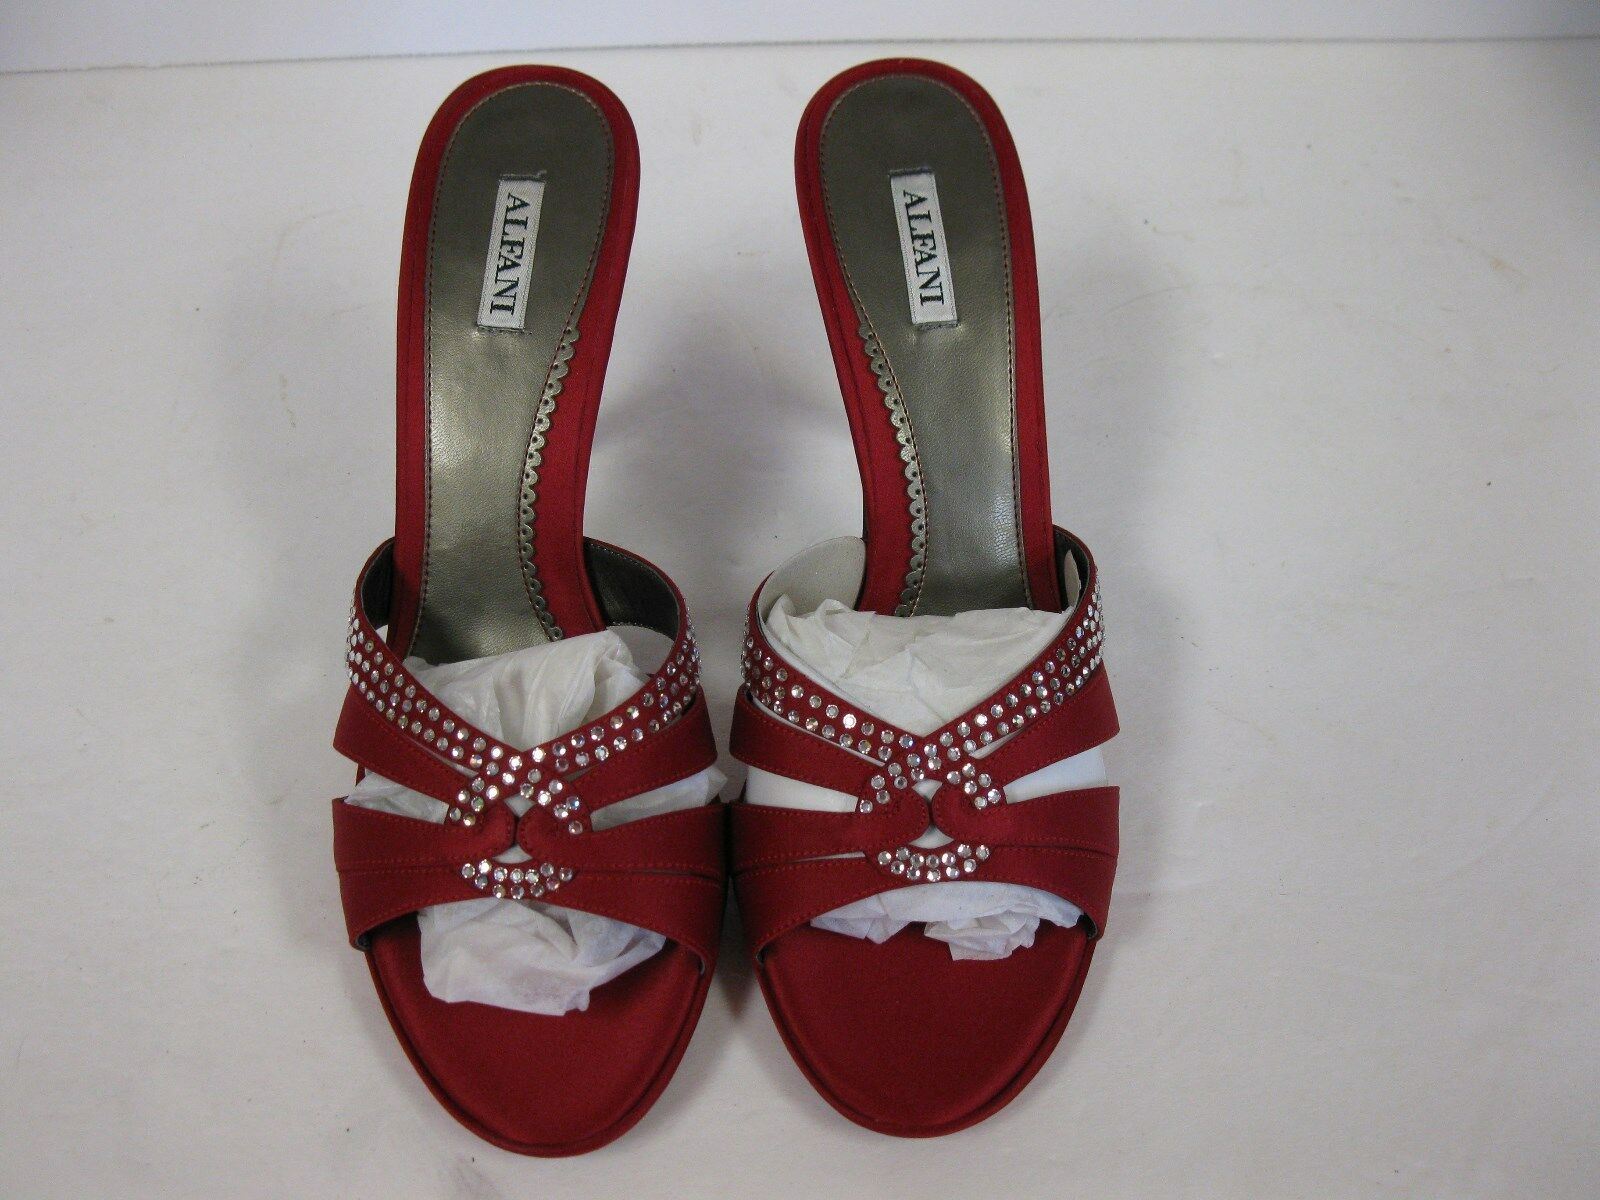 Alfani image Women Ruby Red Sandals with rhinestones. size 10M